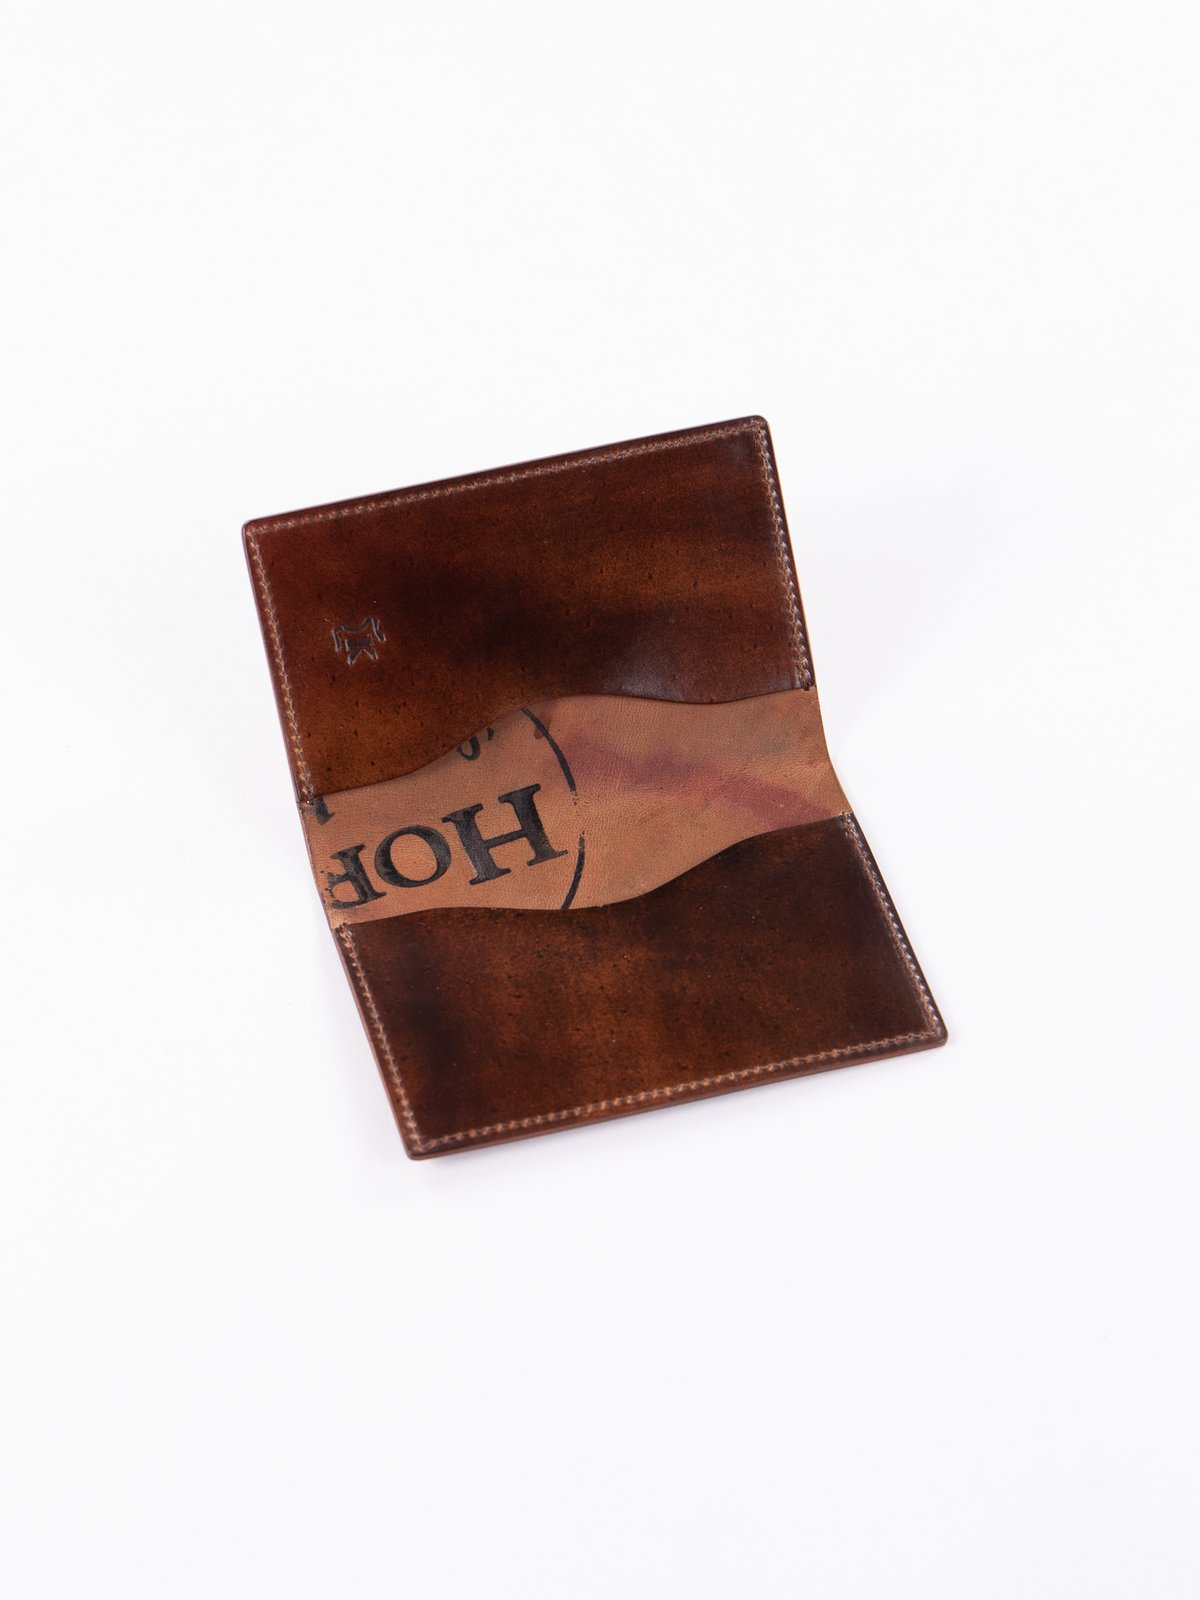 Washed Color 8 Horween Cordovan 1–1 Card Case - Image 2